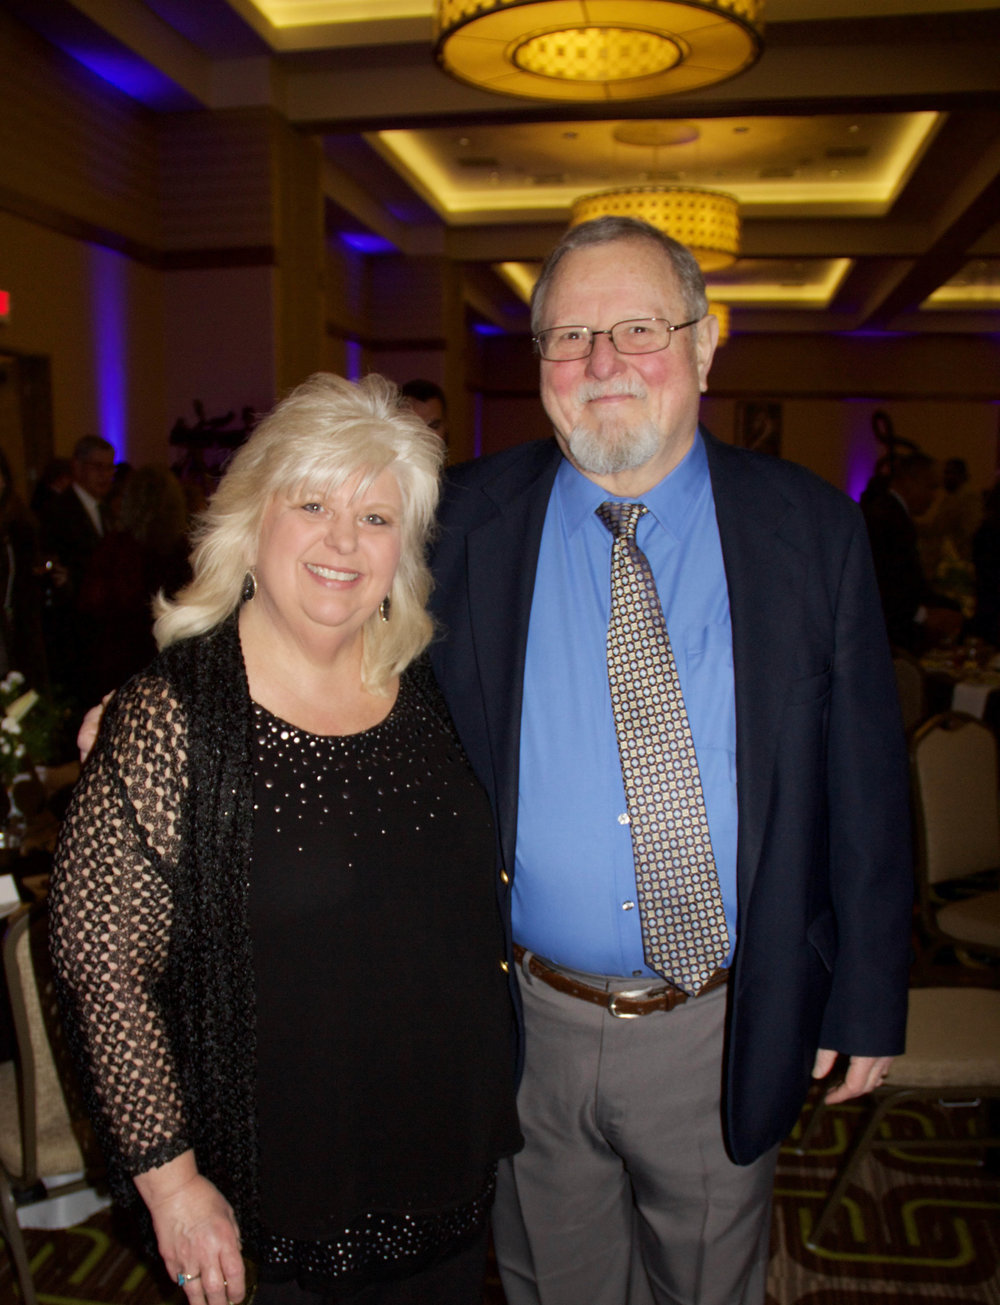 Pam Hesser Owney and Bill Owney